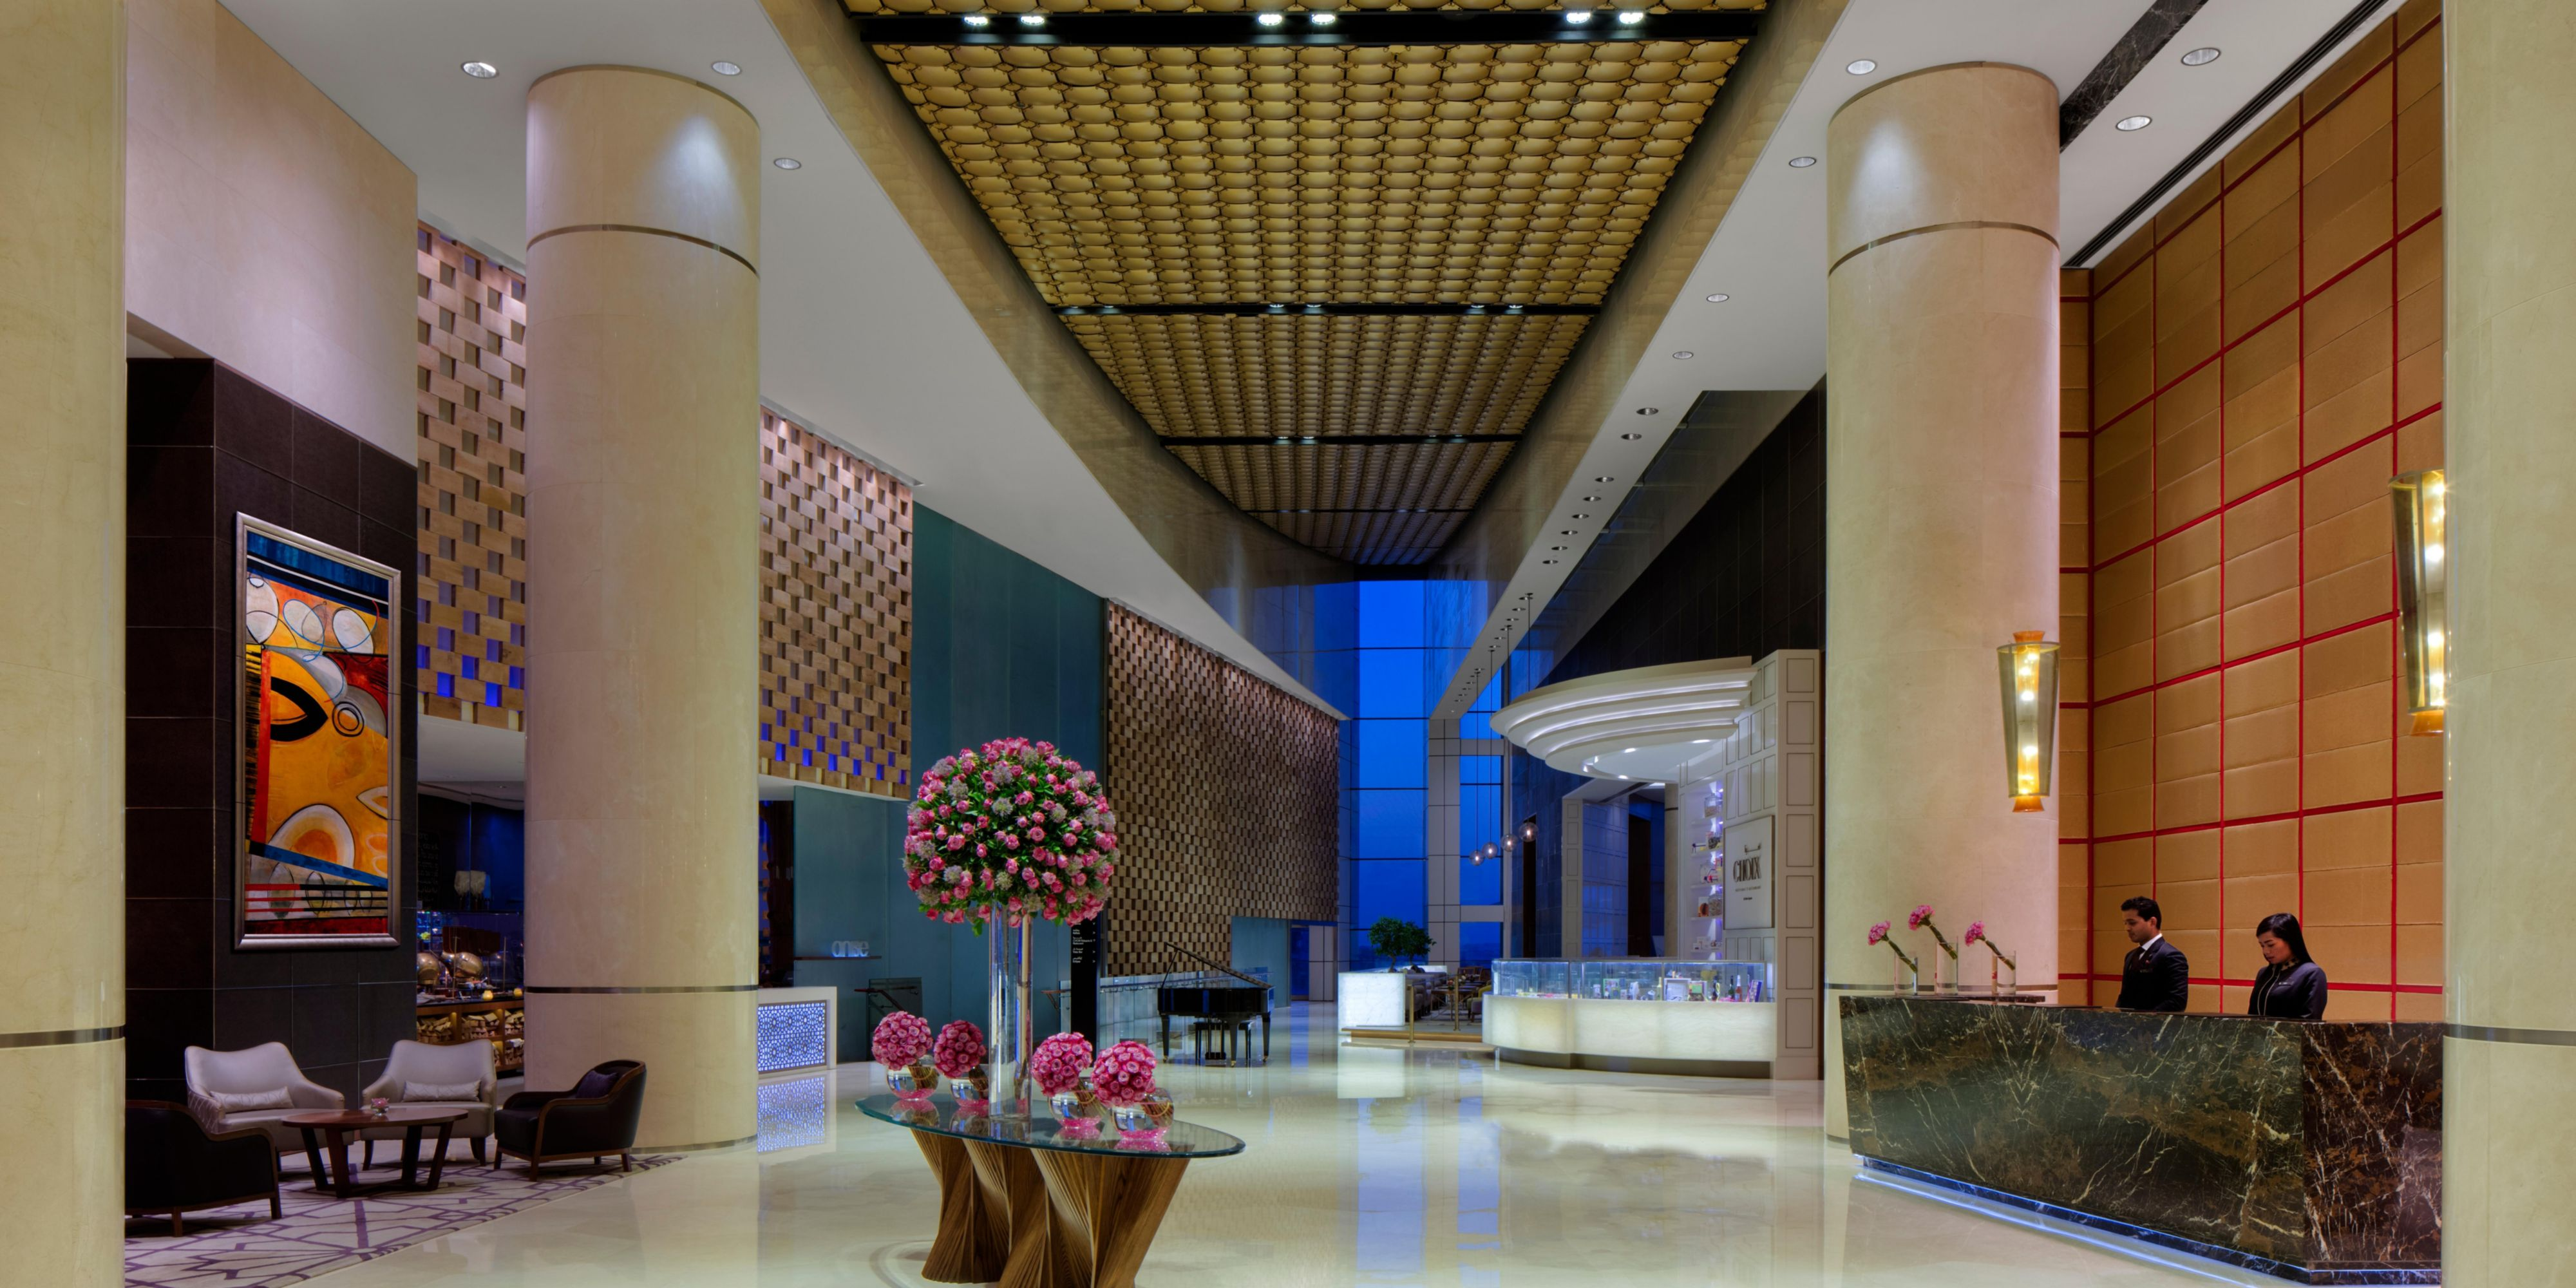 Hotel Entrance Foyer : Intercontinental dubai festival city hotel meeting rooms